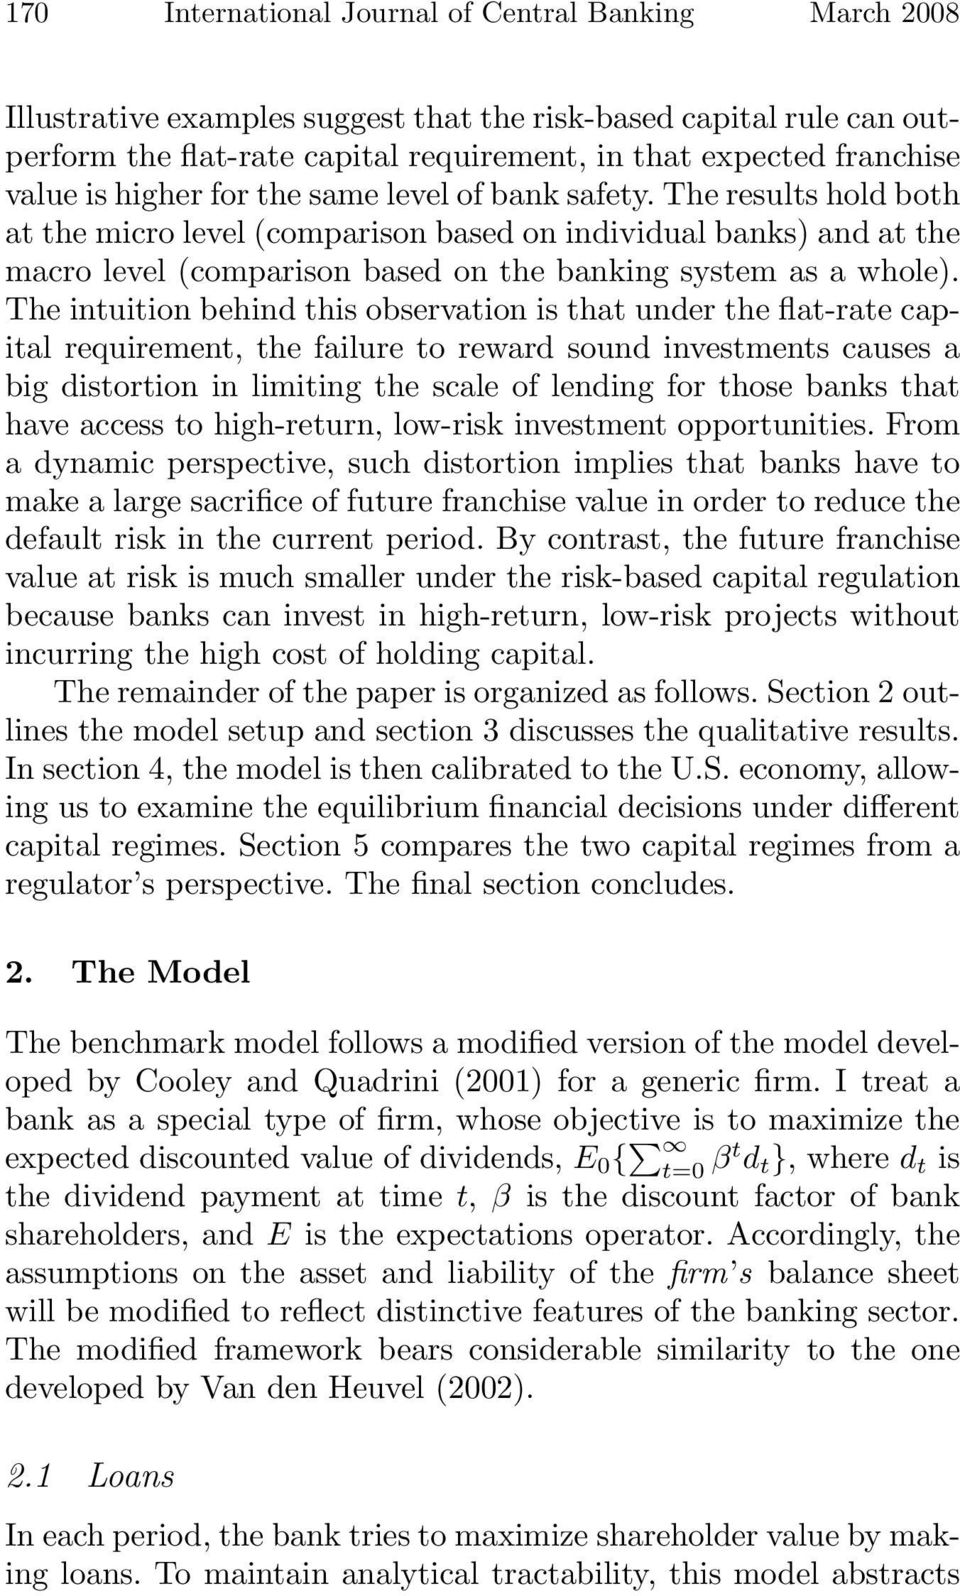 macro and micro causes of financial Key words: financial, microprudential, macroprudential, market discipline  of  the agency, undercutting one of the main reasons for forming a.